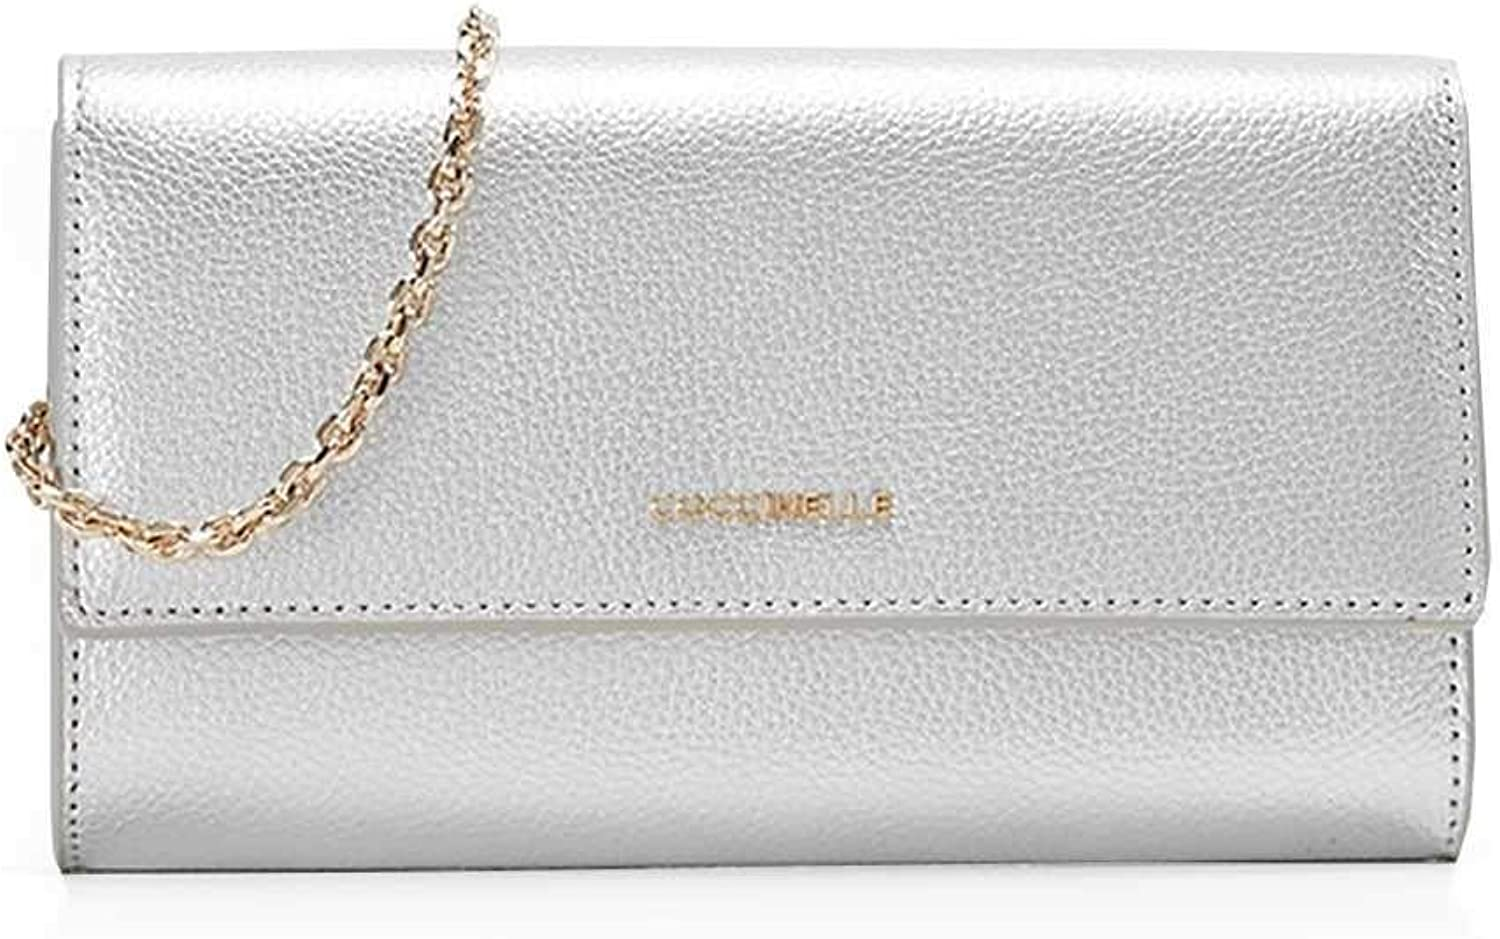 COCCINELLE Wallet METALLIC SOFT Female Leather Silver  E2DW5110701Y69